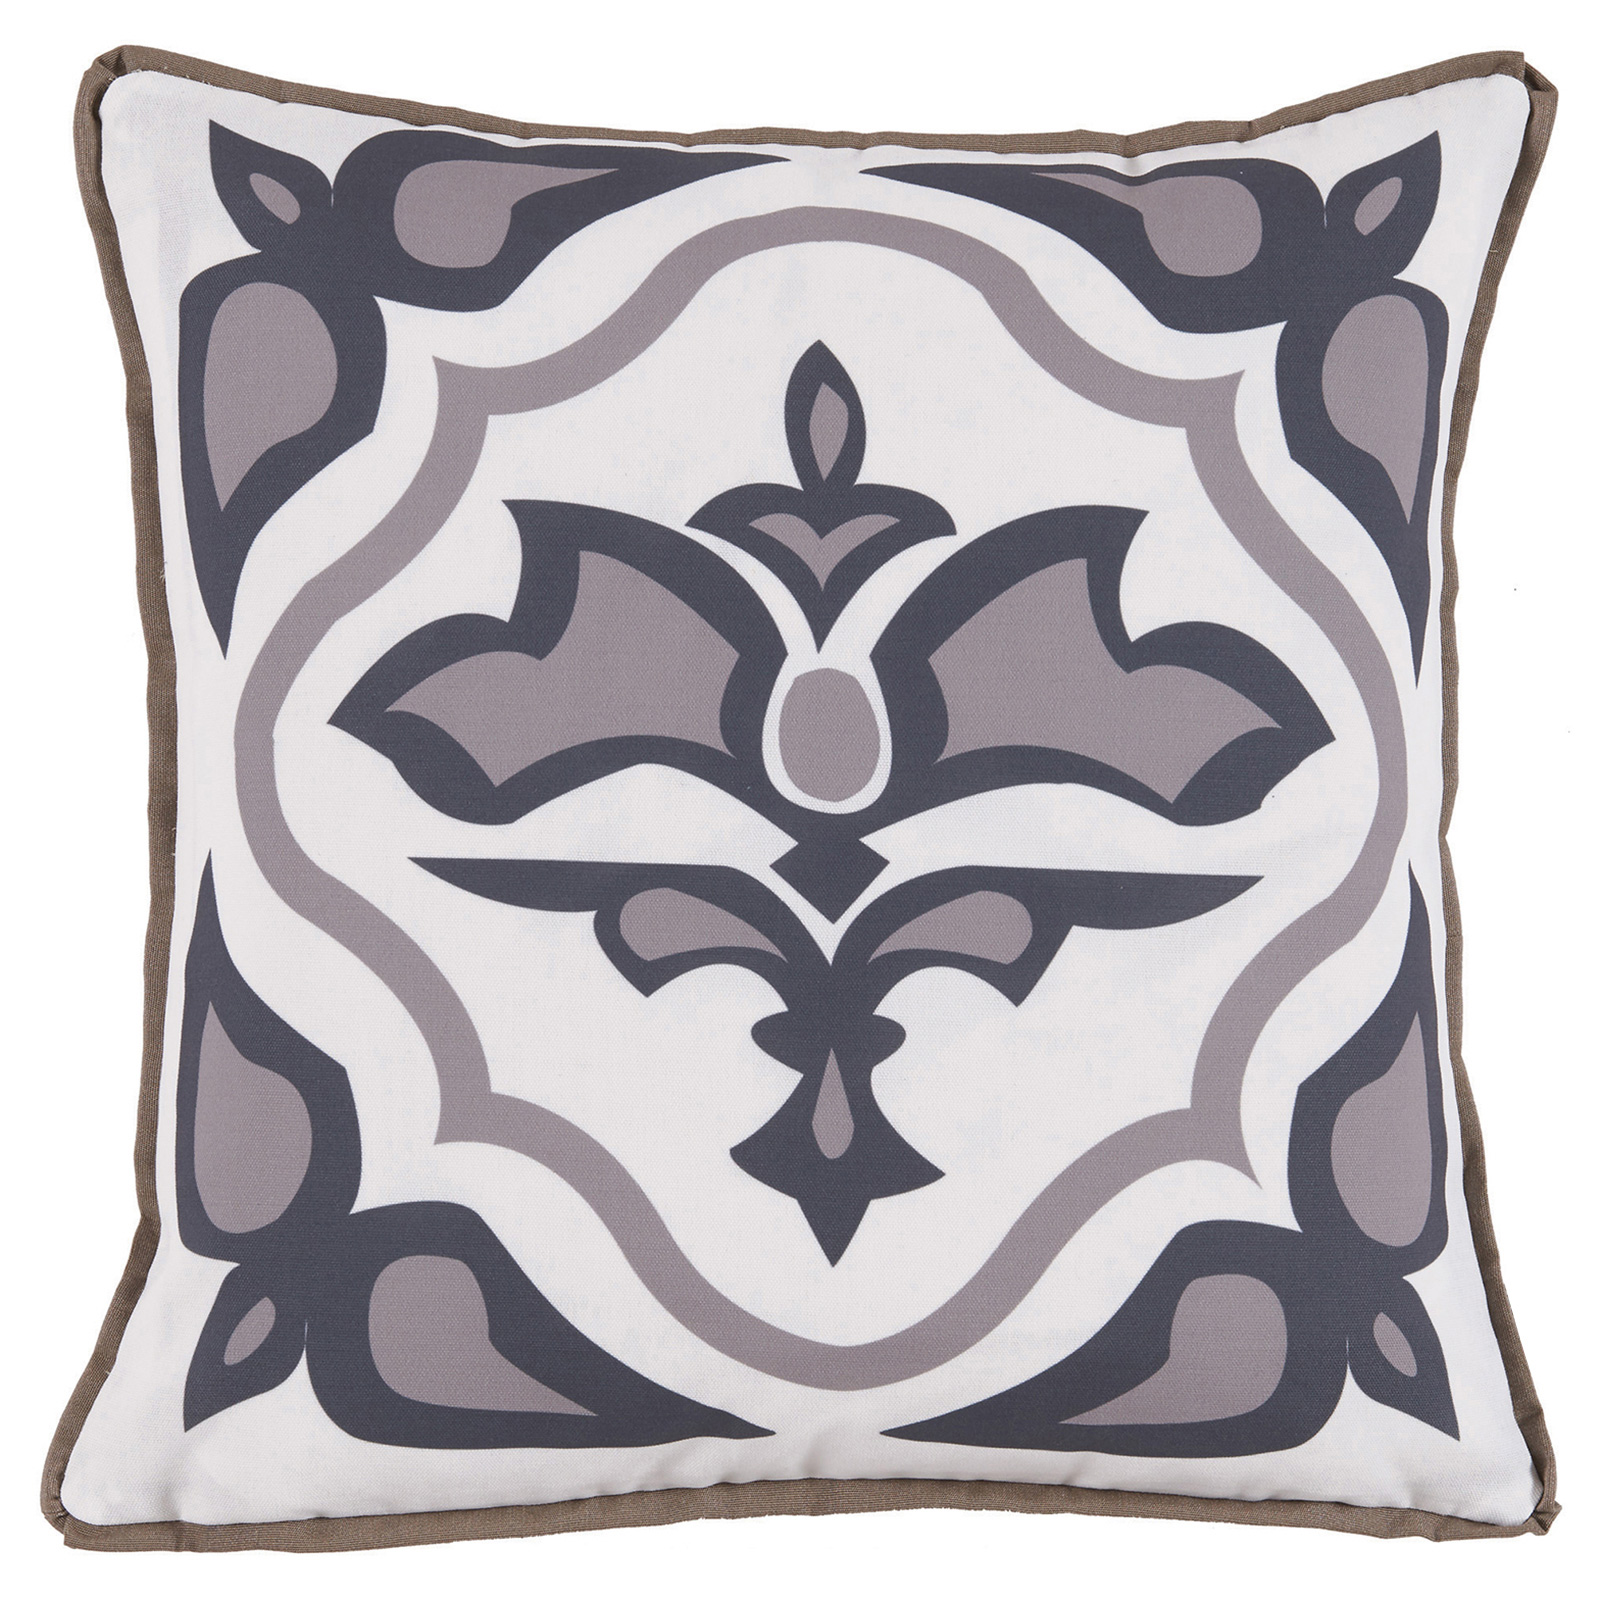 Julie Regency Abstract Taupe Grey Outdoor Pillow - 20x20